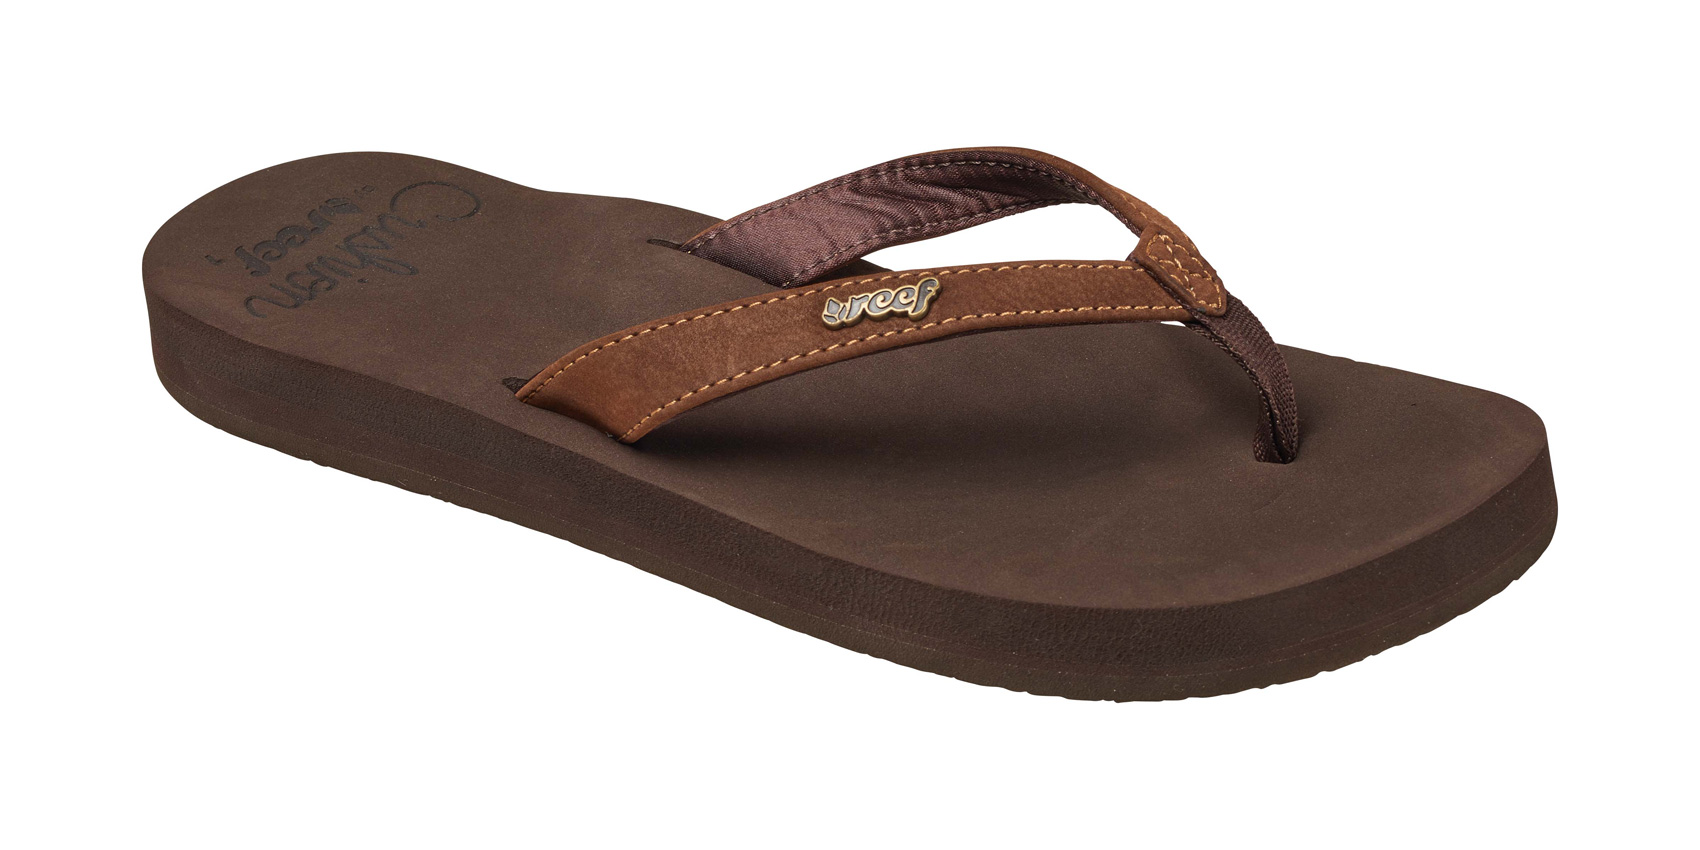 Model Reef Reef Womens Stargazer Flip Flop Sandal In Brown (brown/brown) | Lyst